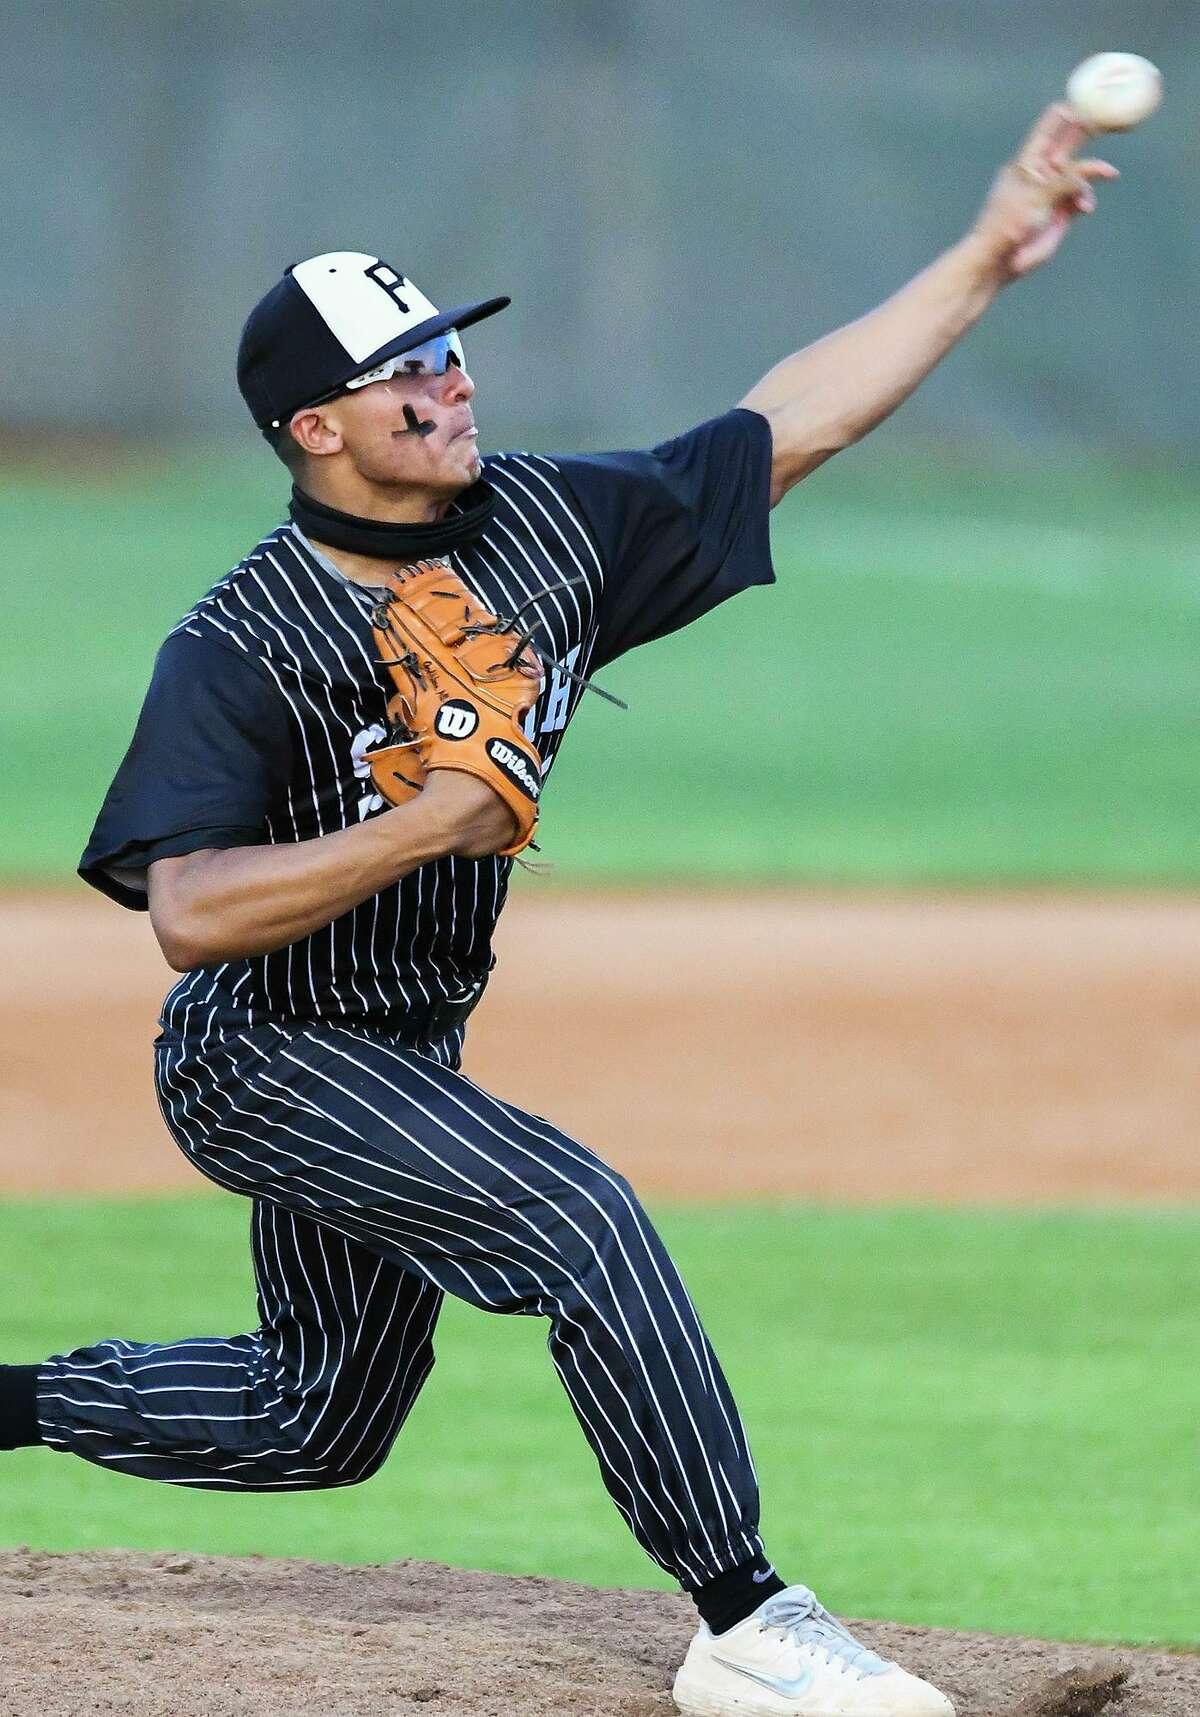 Juan Milera could be making the last start of his high school career Tuesday as United South faces Alexander at 8 p.m. at the SAC. Milera is scheduled for surgery later this week for skin cancer which could keep him out indefinitely.